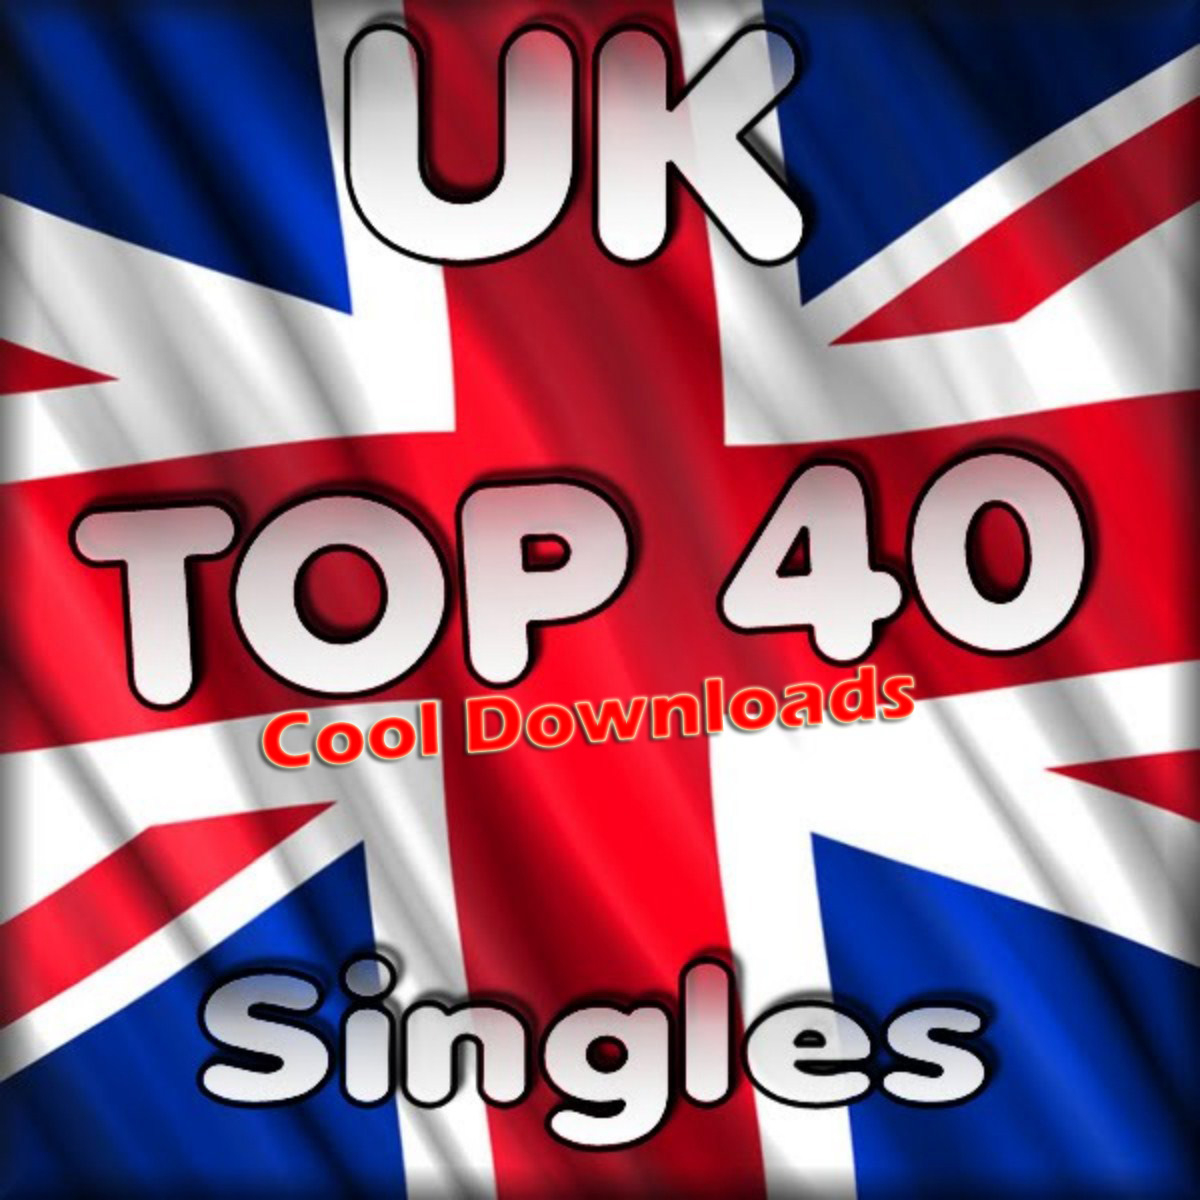 torrent official uk top 40 singles chart